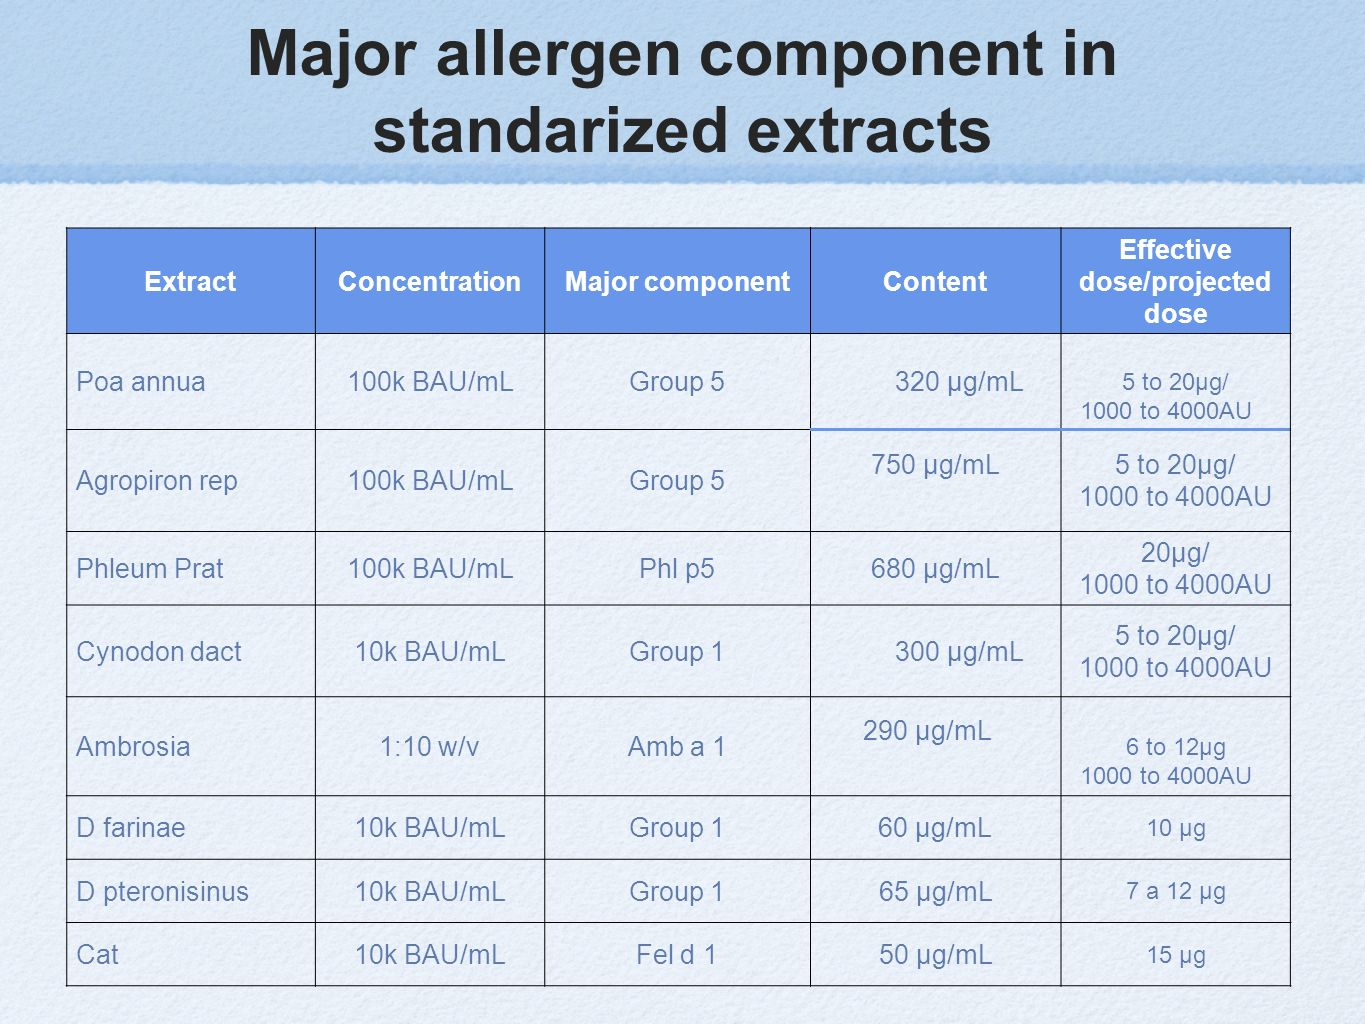 Major allergen component in standarized extracts